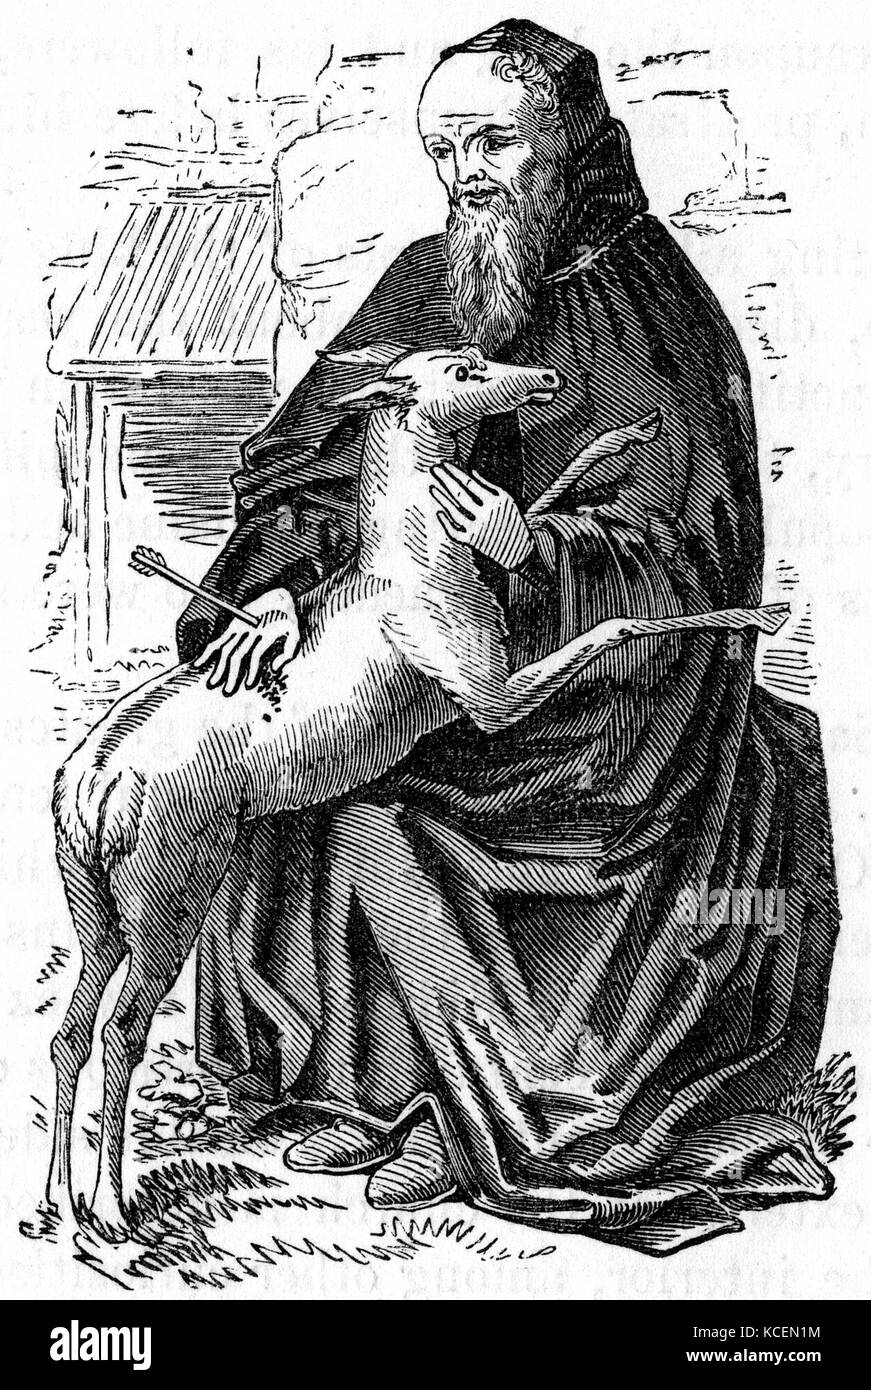 Saint Giles (650 AD – c. 710), also known as Giles the Hermit, was a Greek, Christian, hermit saint from Athens, - Stock Image